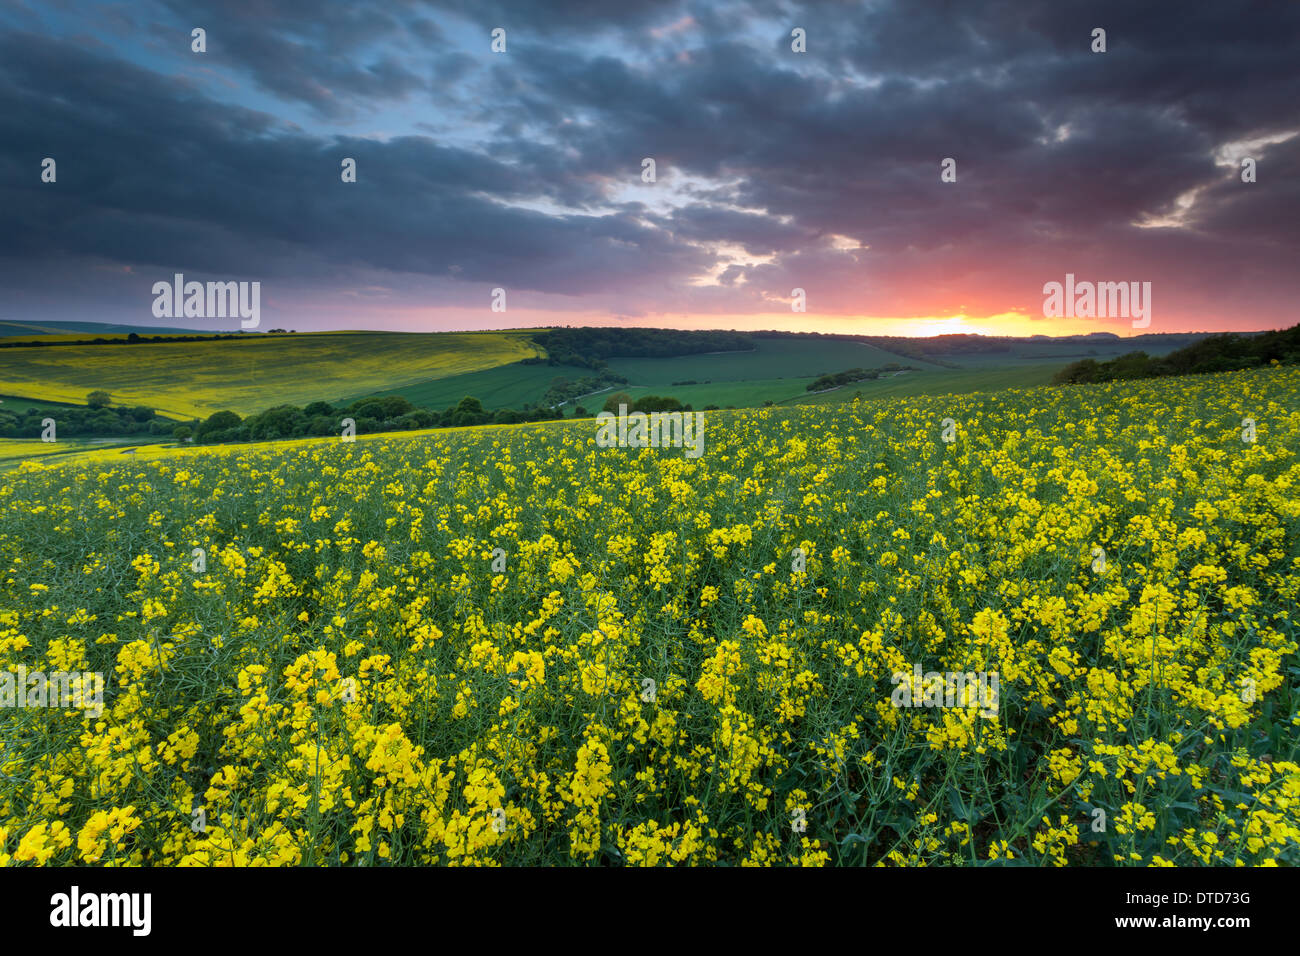 Spring sunset in South Downs National Park, East Sussex, England. - Stock Image